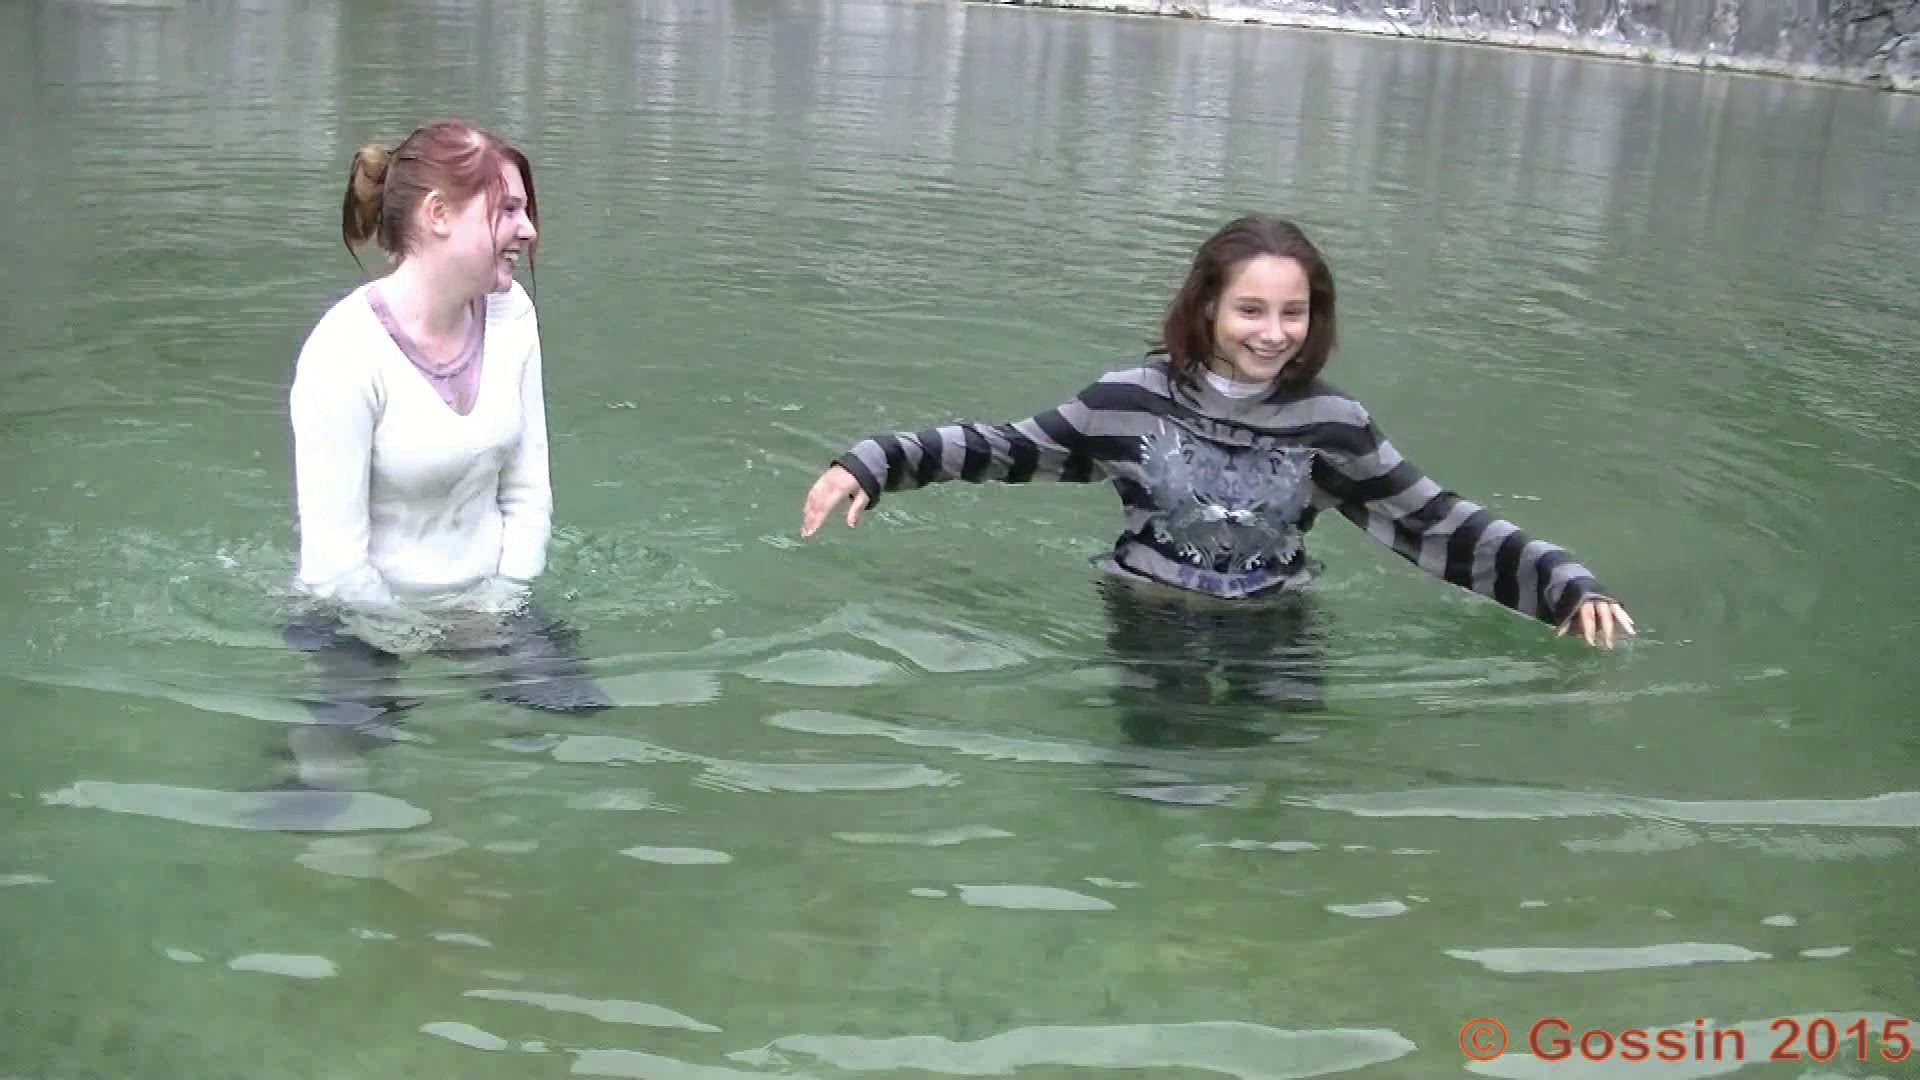 Eliska and Betka in the flooded quarry